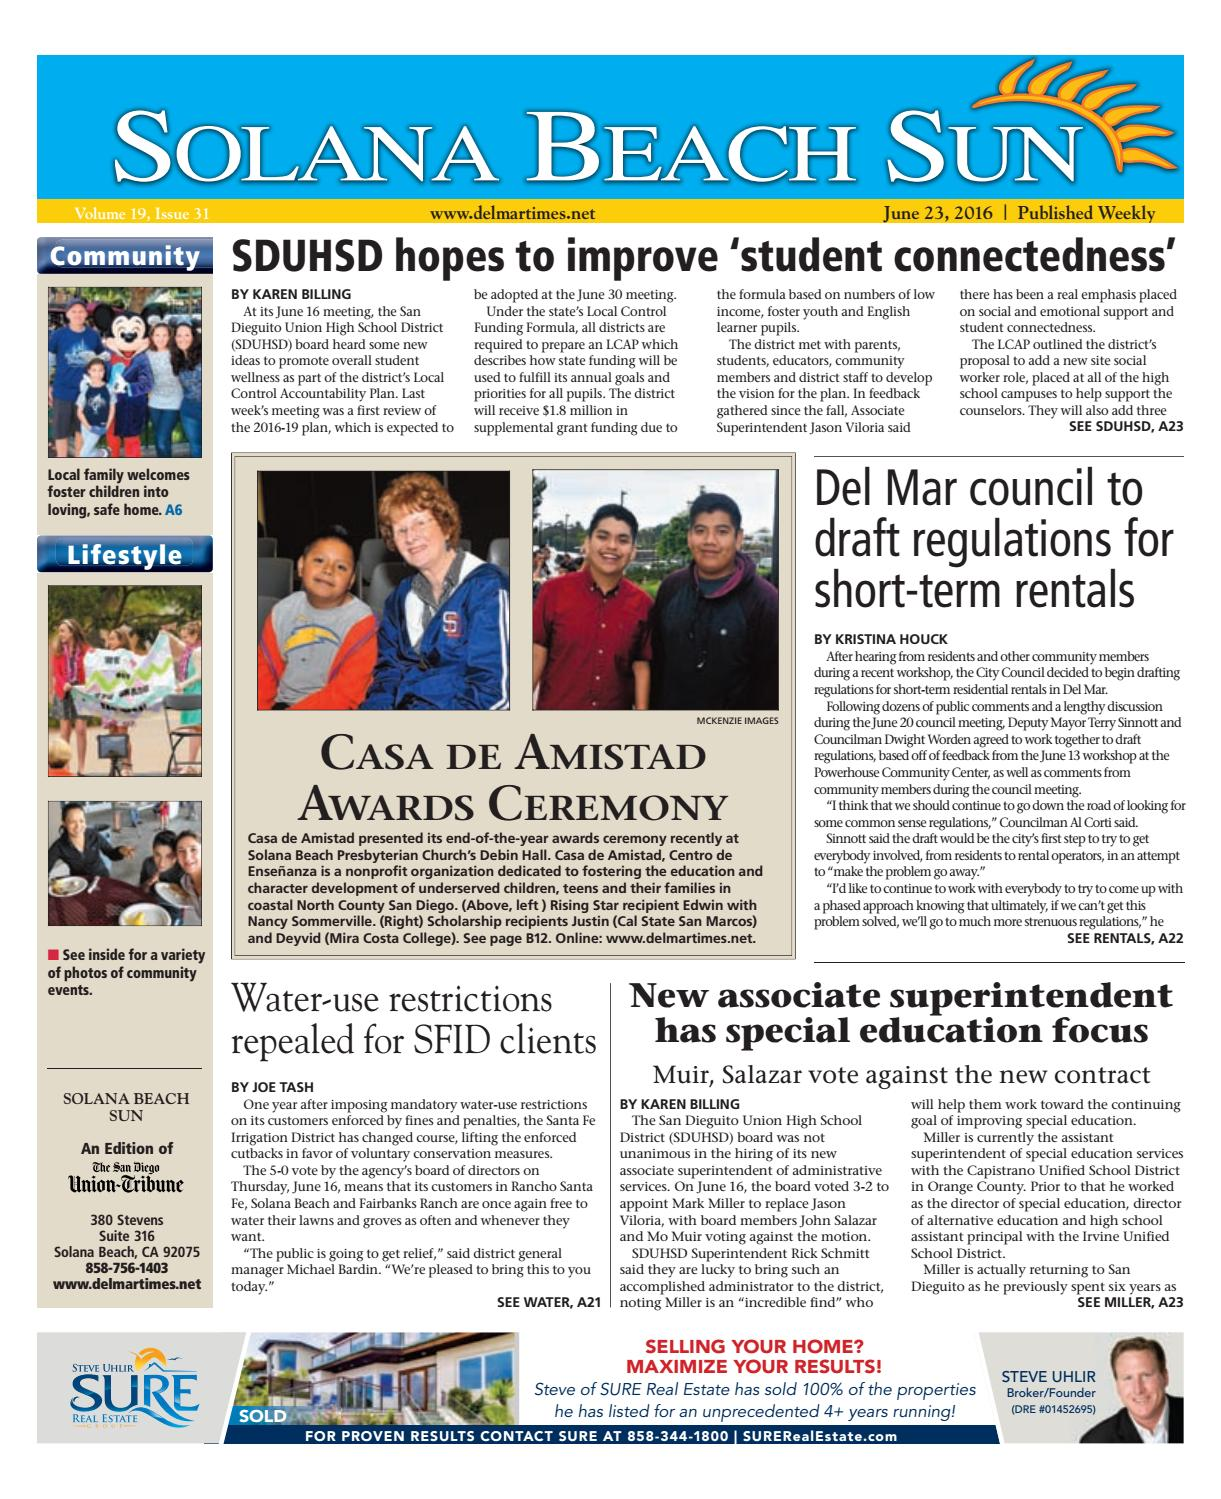 Solana Beach Sun 06 23 16 By Mainstreet Media Issuu